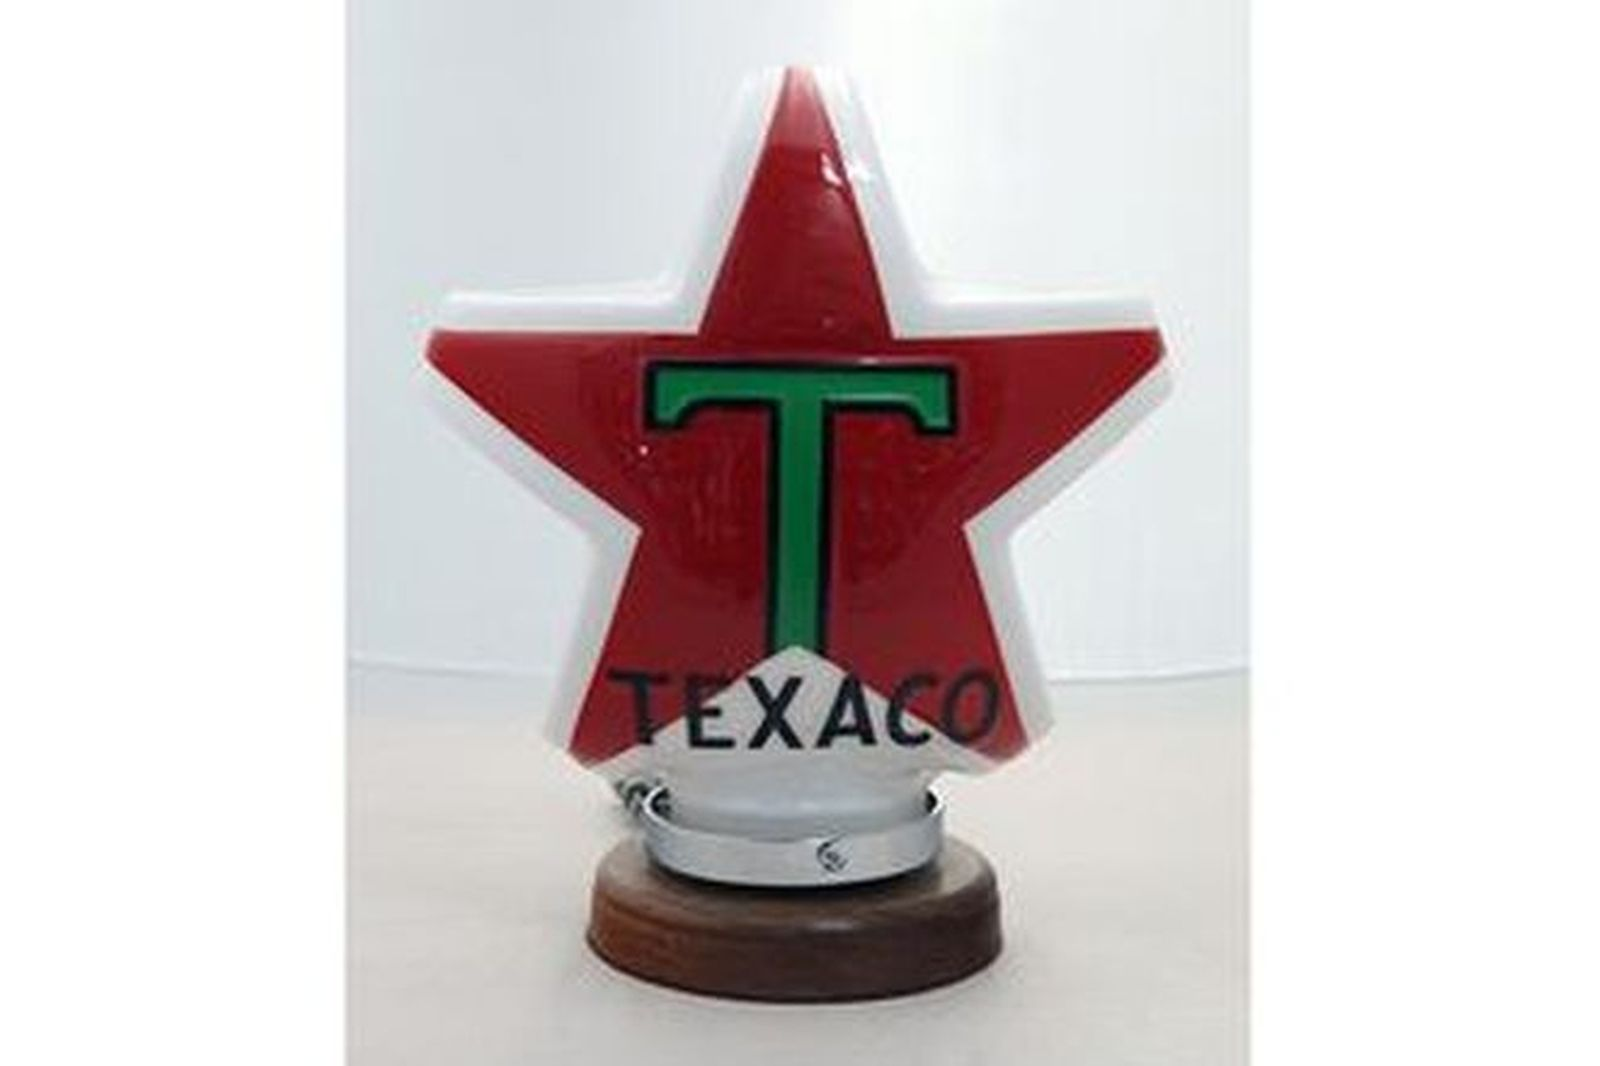 Light - Early Acrylic Texaco Star Bowser Top (Reproduction) with polished timber light up base